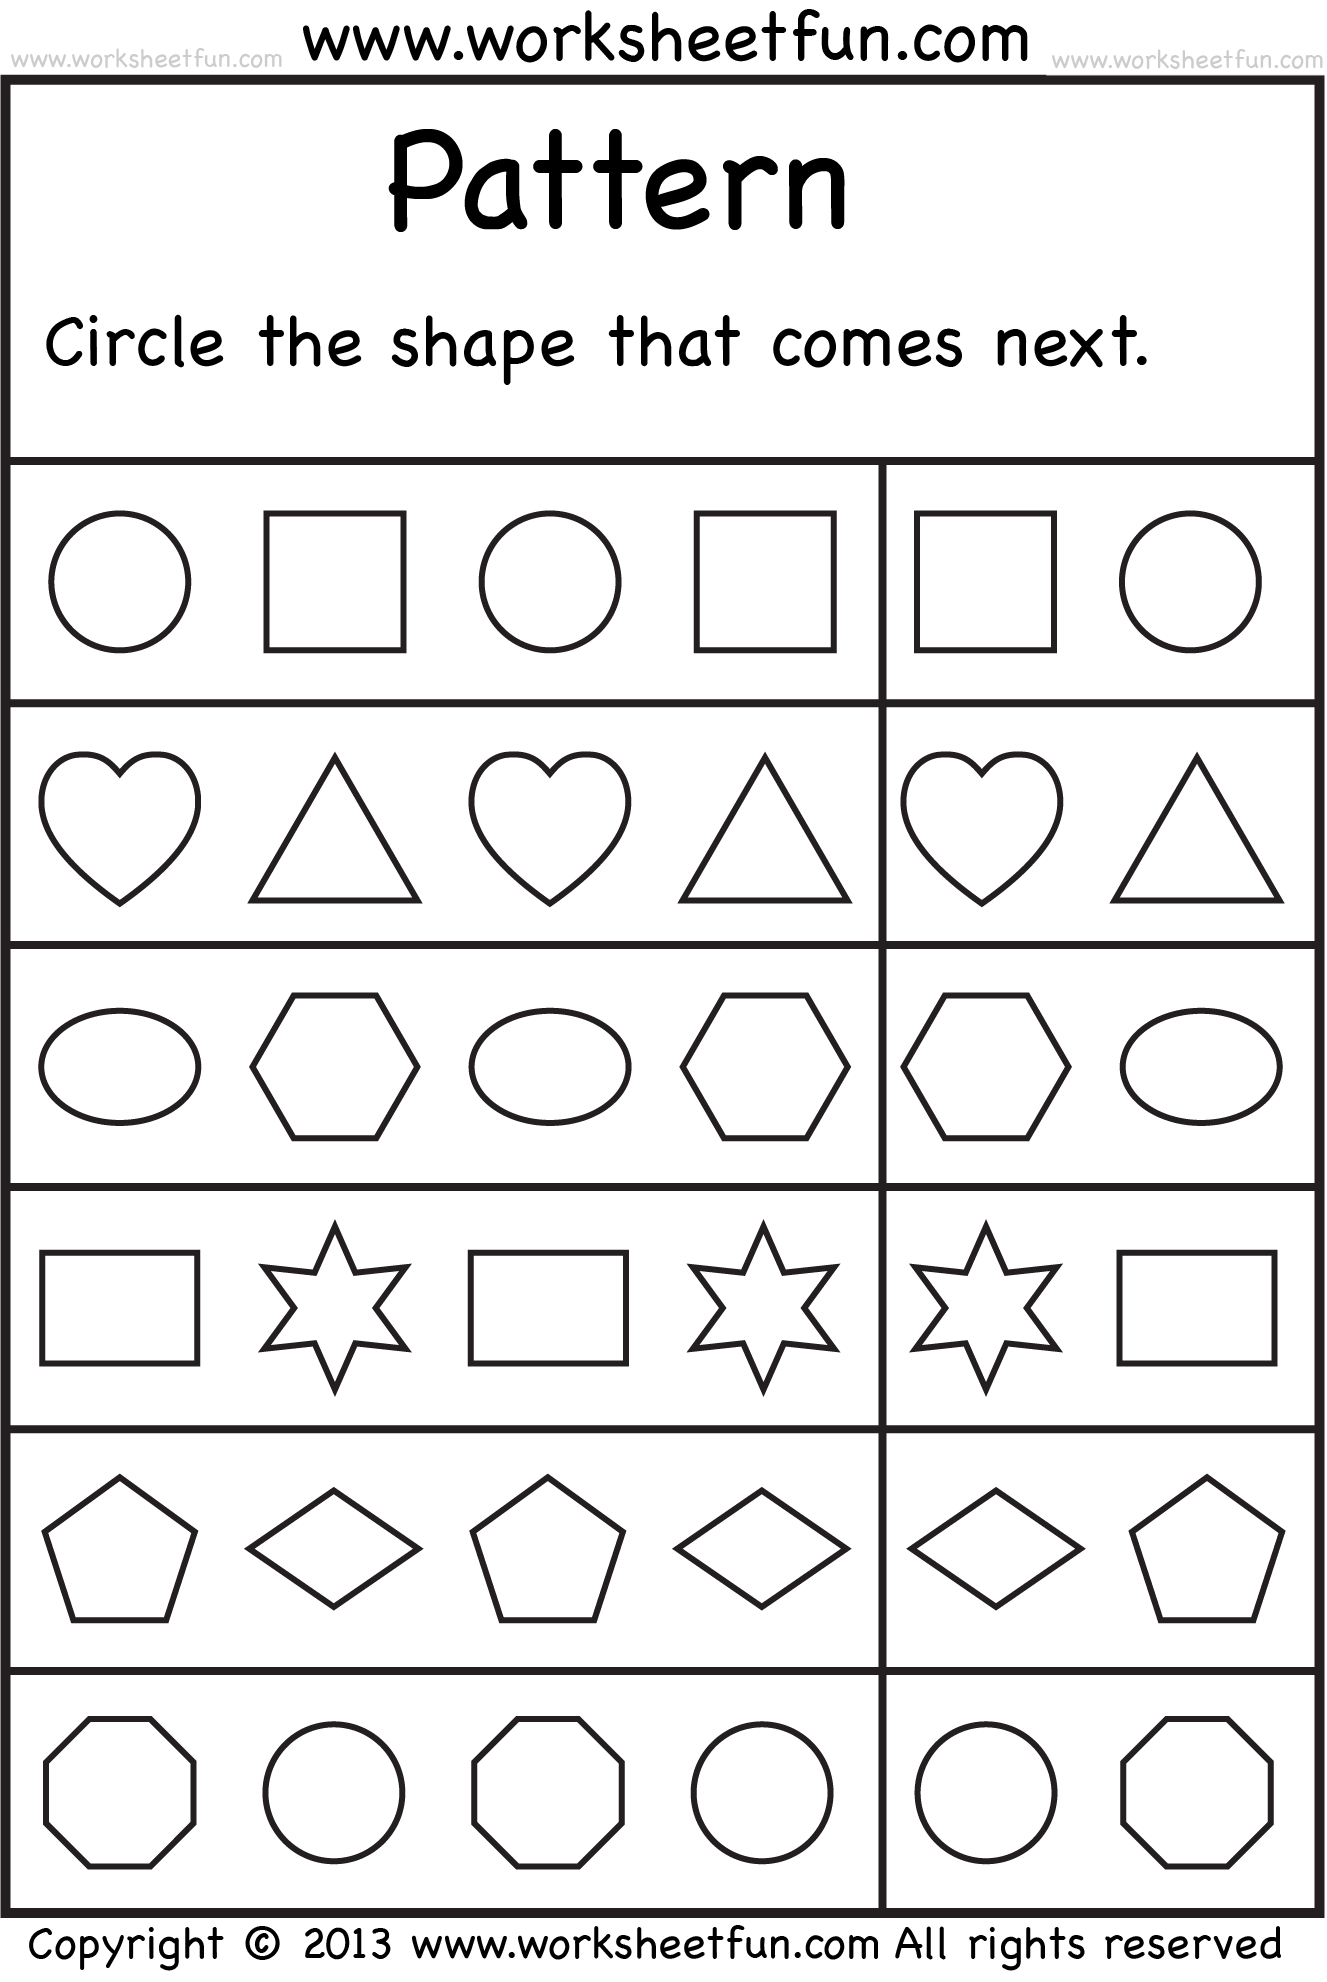 Weirdmailus  Sweet  Images About School Worksheets On Pinterest  Number Words  With Remarkable  Images About School Worksheets On Pinterest  Number Words Alphabet Worksheets And Free Printable Kindergarten Worksheets With Alluring Surface Area Worksheet Th Grade Also Child Tax Credit Worksheet  In Addition Dividing Fractions With Whole Numbers Worksheet And Numbers Worksheets Kindergarten As Well As Multiplication Worksheets Grade  Additionally Ordering Fractions Decimals And Percents Worksheets From Pinterestcom With Weirdmailus  Remarkable  Images About School Worksheets On Pinterest  Number Words  With Alluring  Images About School Worksheets On Pinterest  Number Words Alphabet Worksheets And Free Printable Kindergarten Worksheets And Sweet Surface Area Worksheet Th Grade Also Child Tax Credit Worksheet  In Addition Dividing Fractions With Whole Numbers Worksheet From Pinterestcom